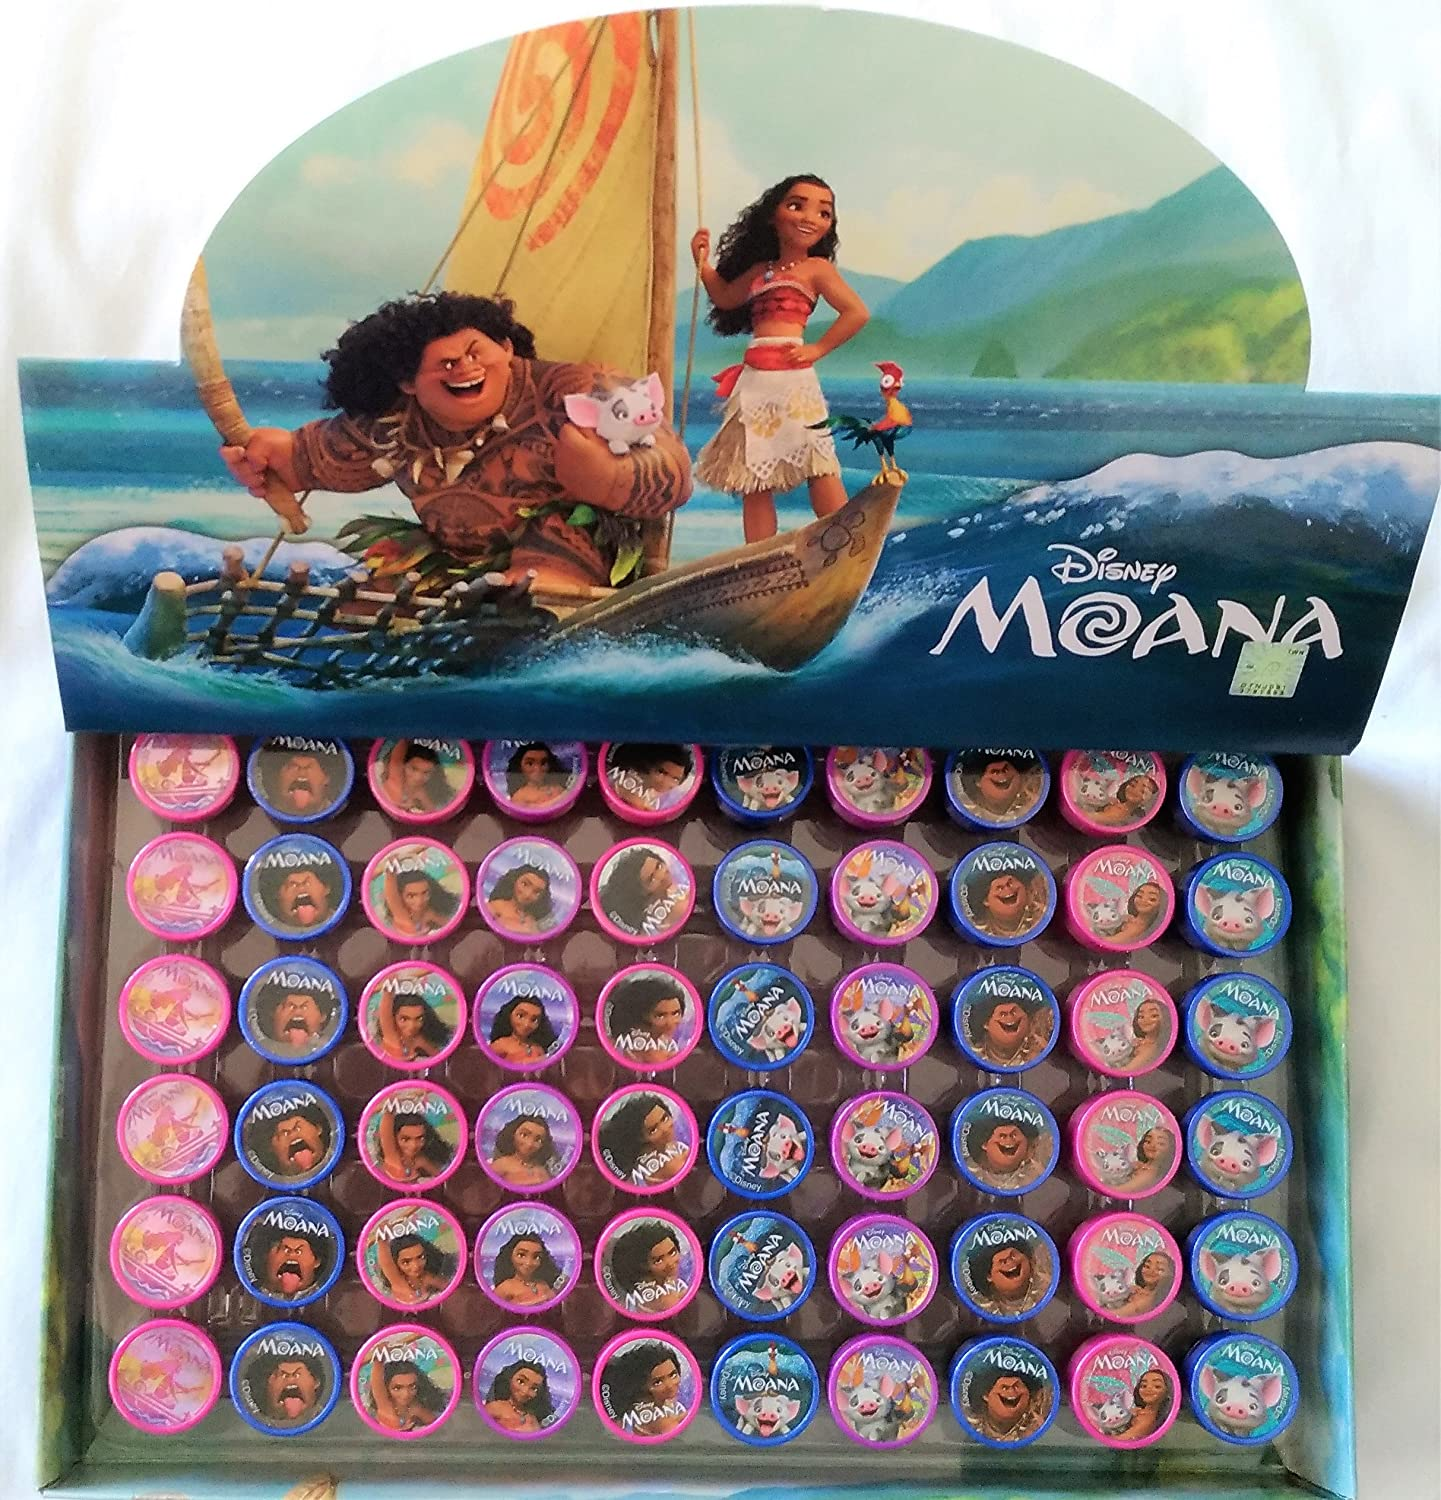 60 pcs Disney Moana Self-inking Stamps Stampers Pencil Topper Authentic Disney Licensed itisyours SG/_B0723BBBDD/_US